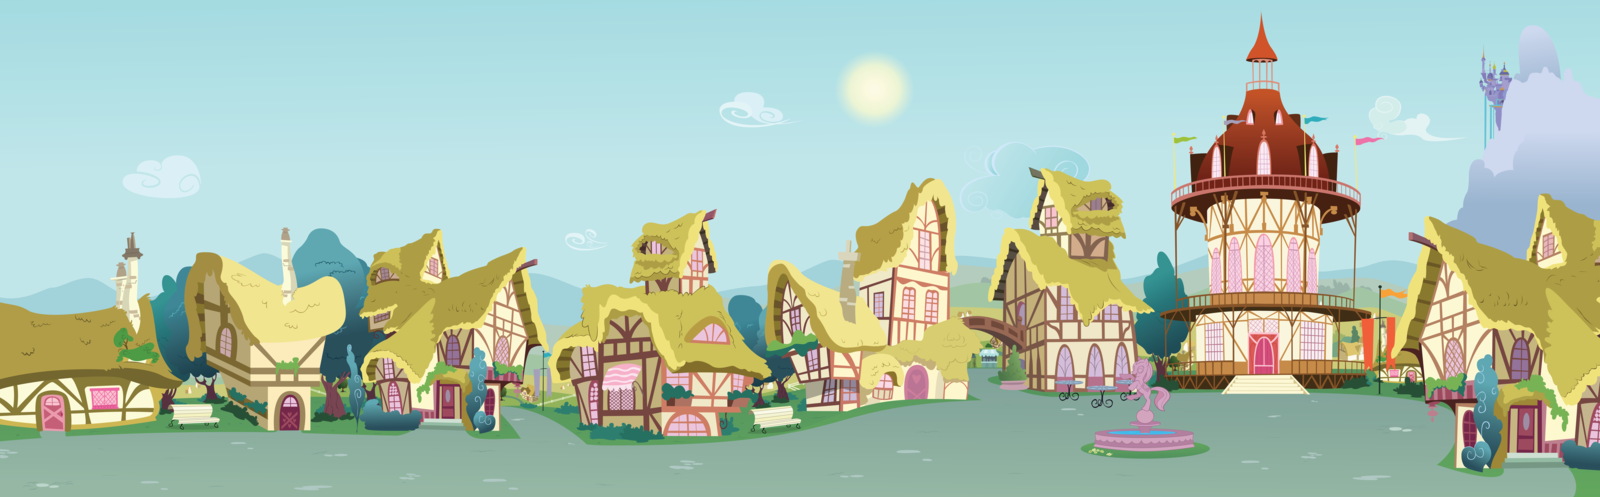 Town Background PNG - 162757